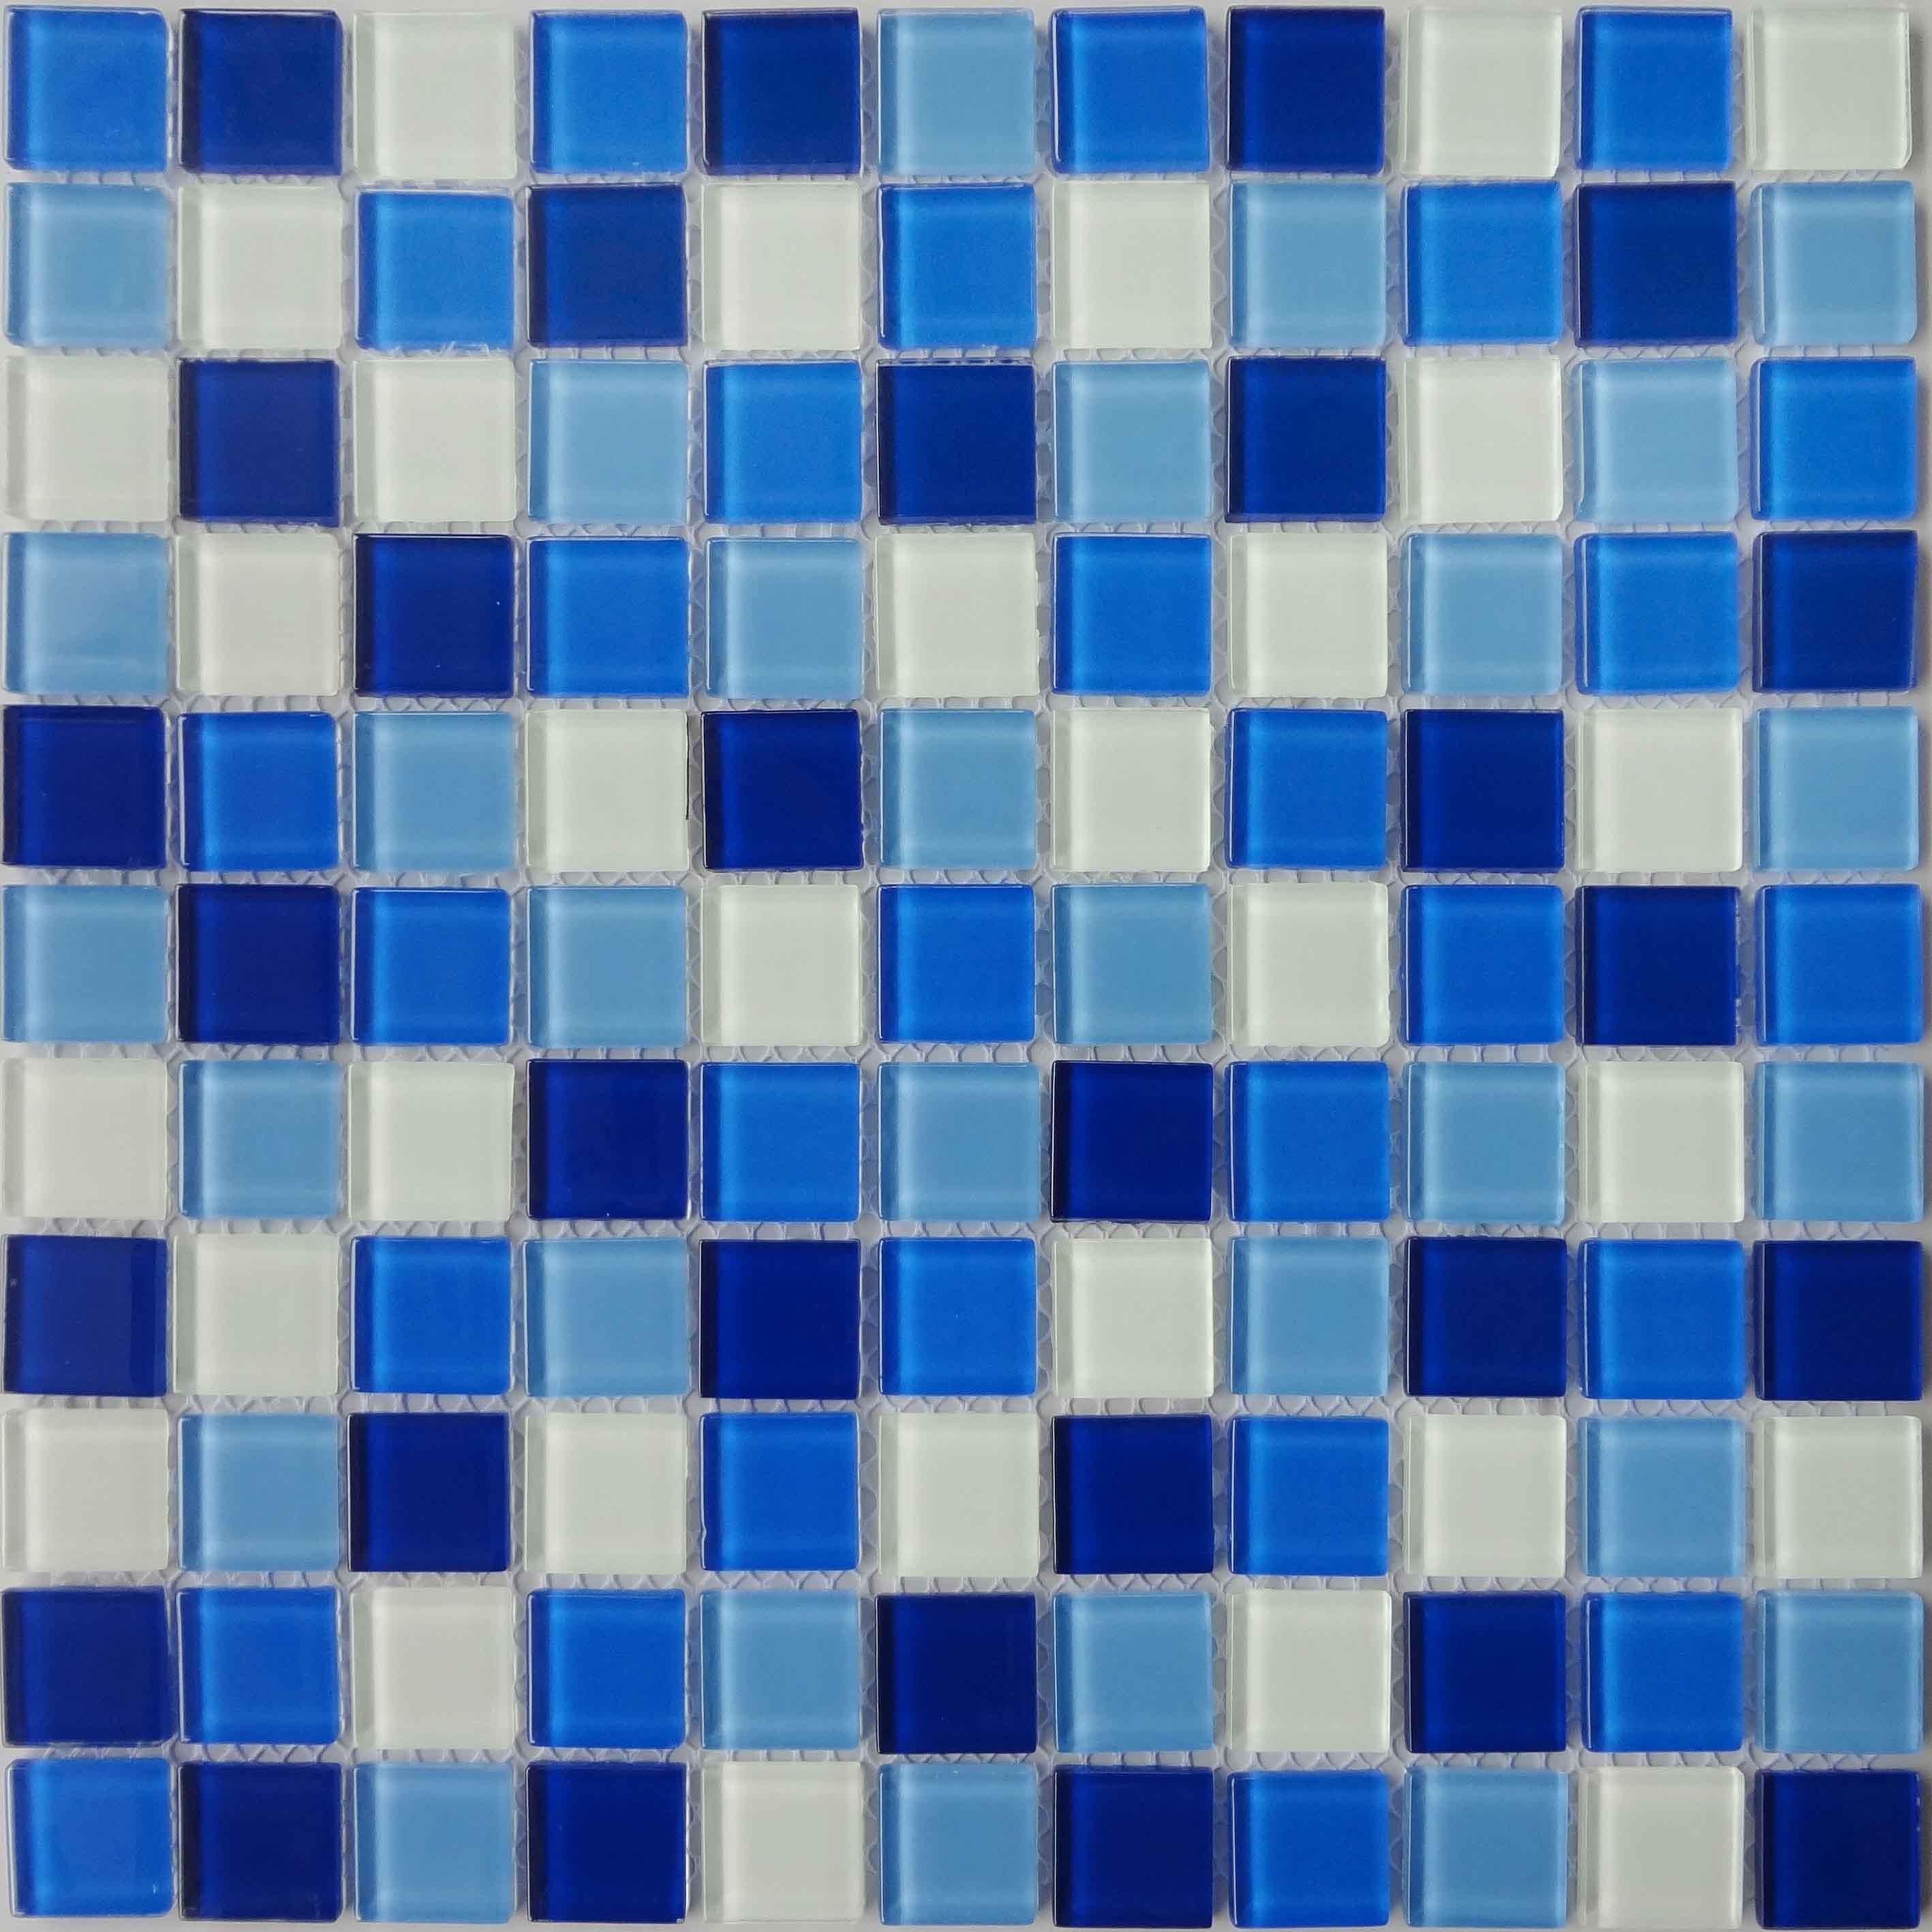 Swimming Pool Tiles And Mosaic Mosaics For